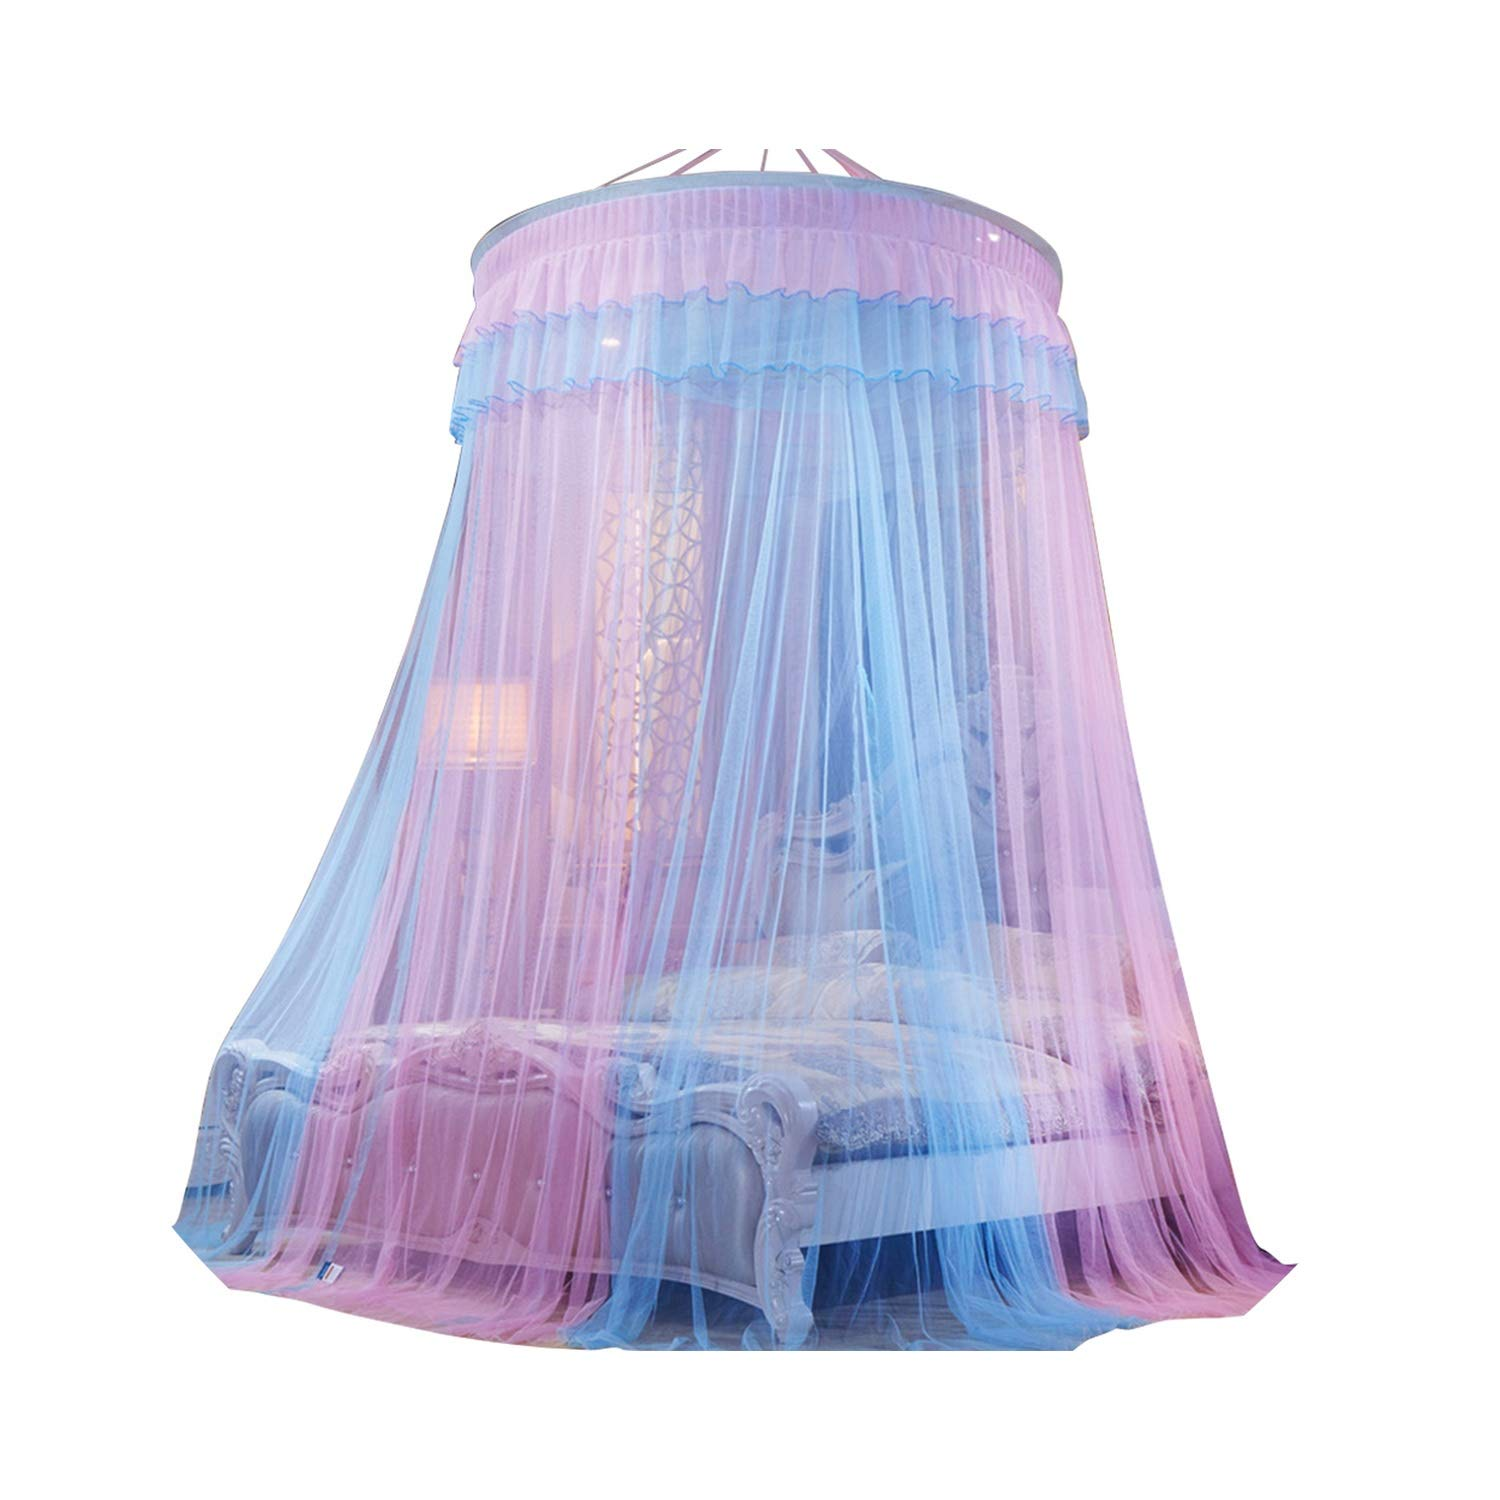 Round Dome Bed Canopy Mosquito Net Curtain Hanging Tent Mosquito Nets Cibinlik Moustiquaire for Kids Bedroom Girls Room Decor,Blue and Pink